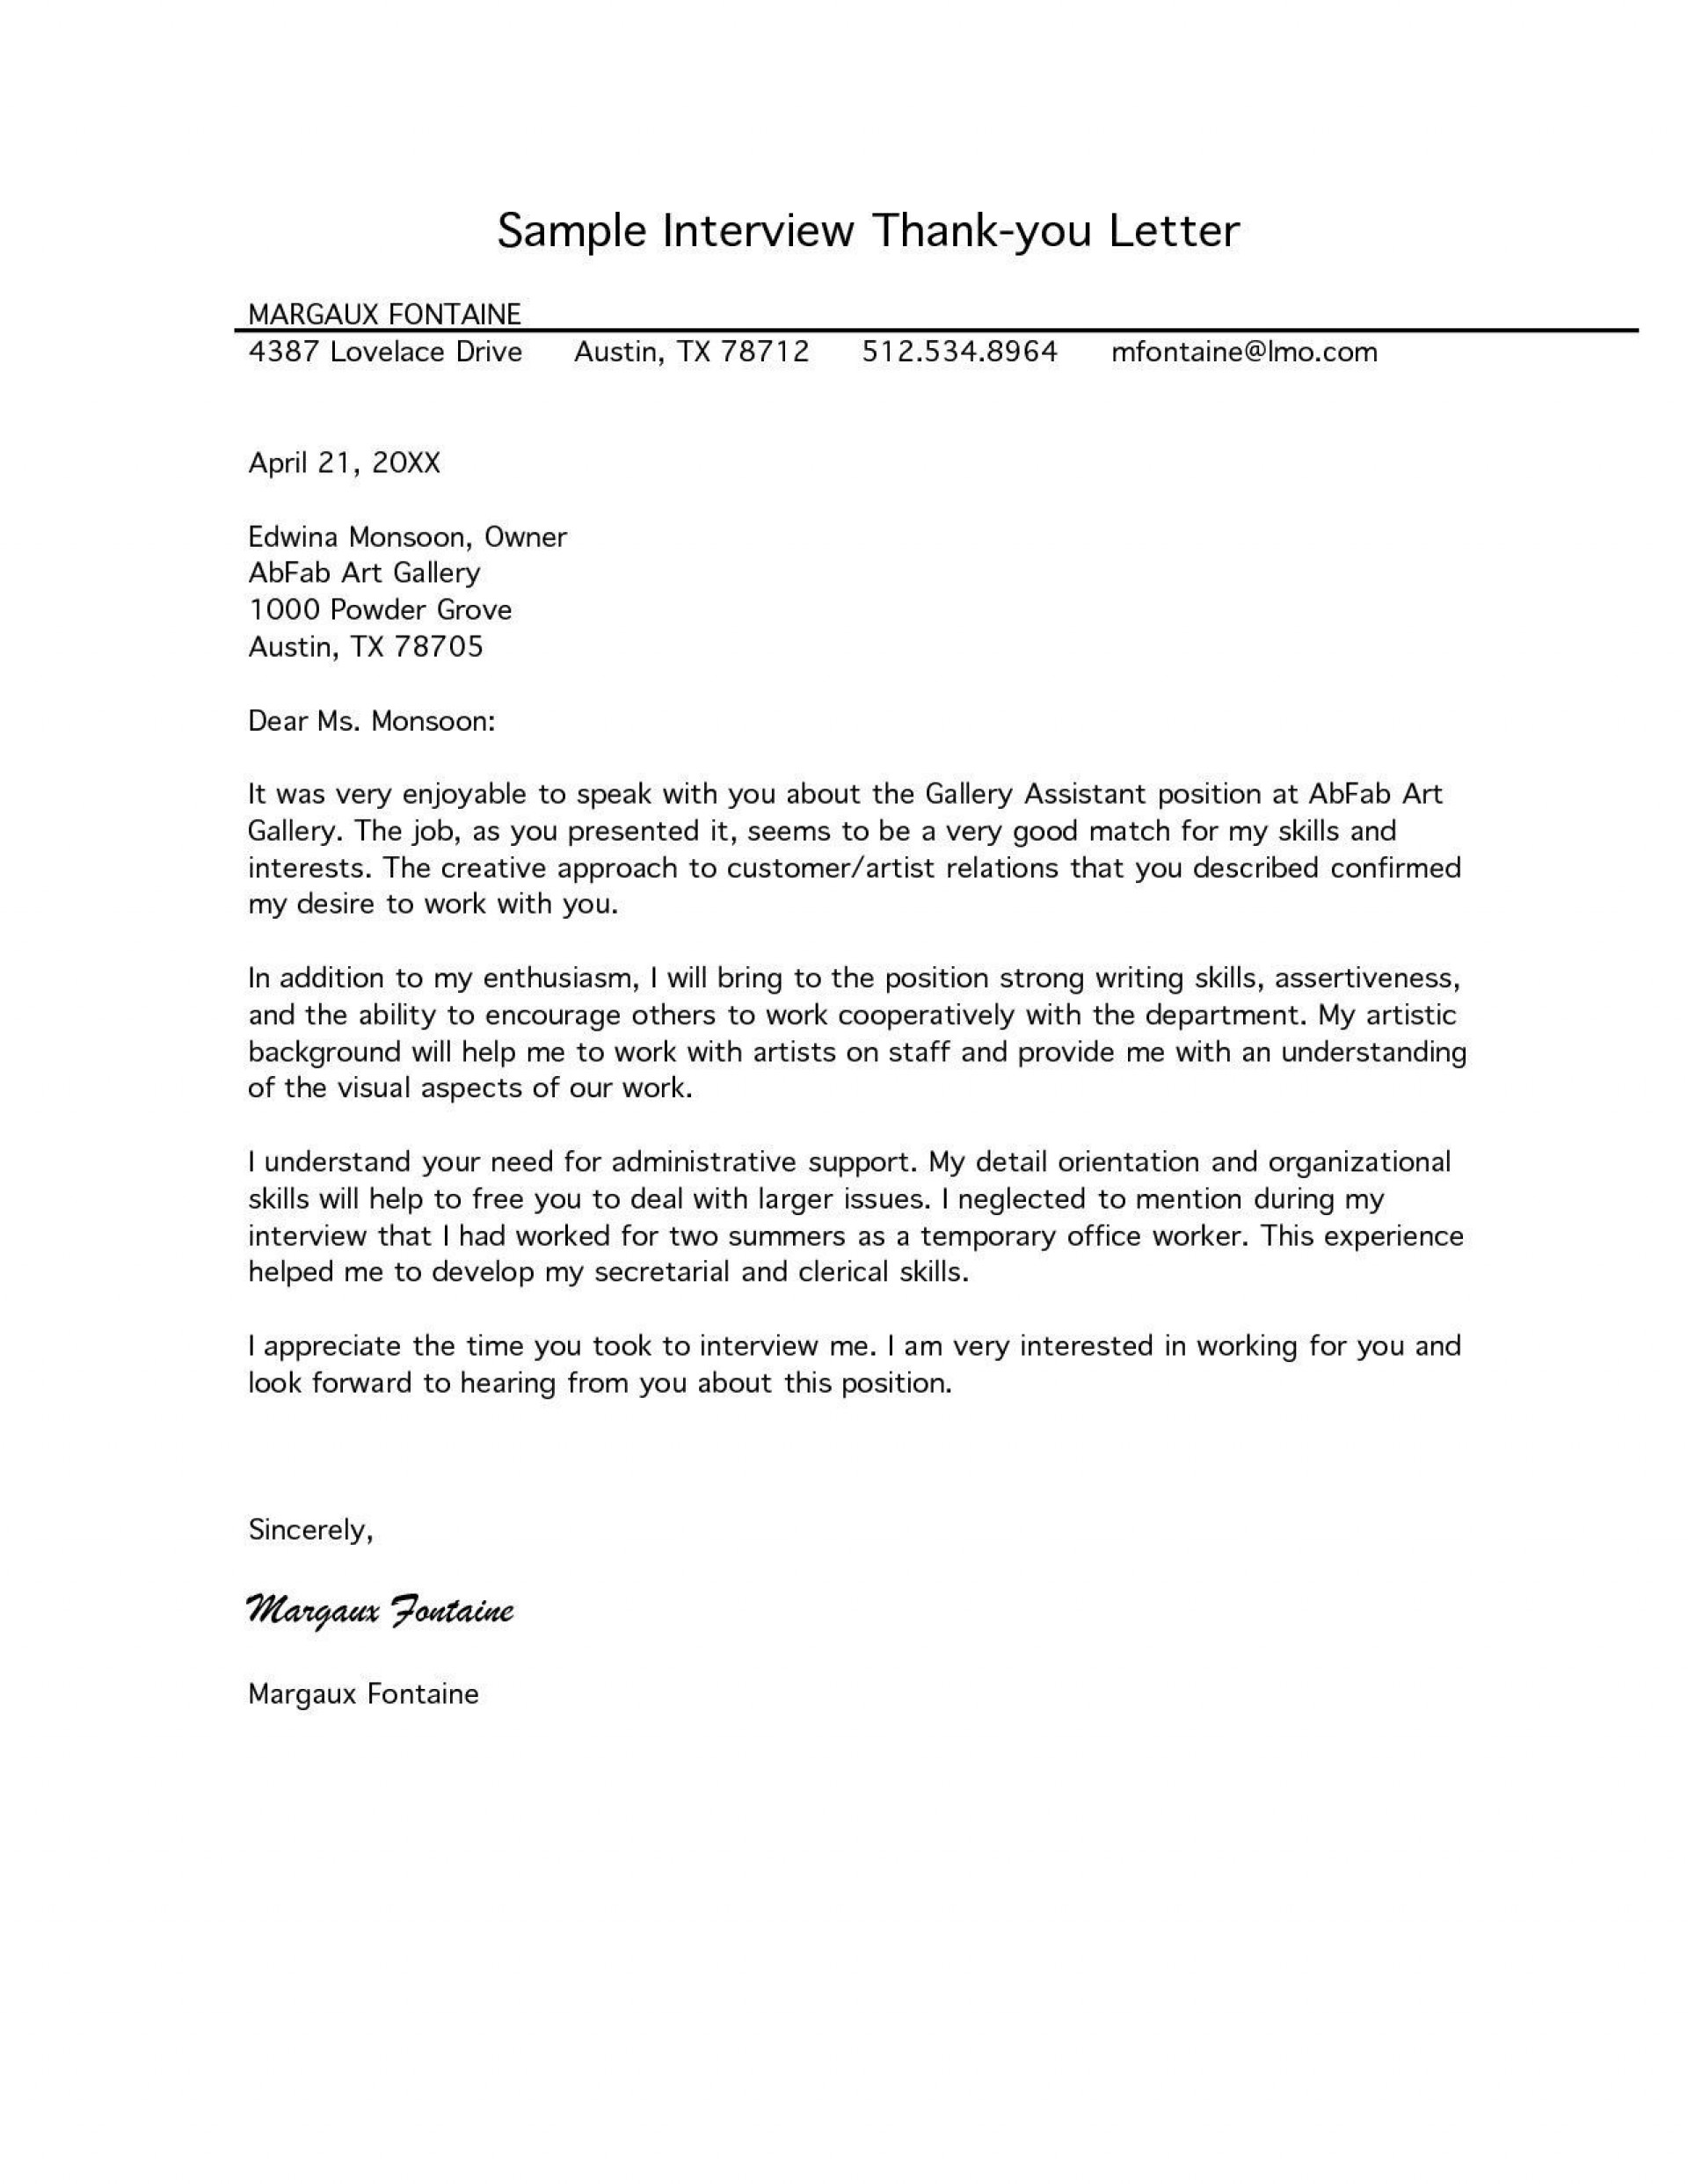 002 Beautiful Follow Up Letter After Interview Sample  Handwritten Note Email For Job Template1920